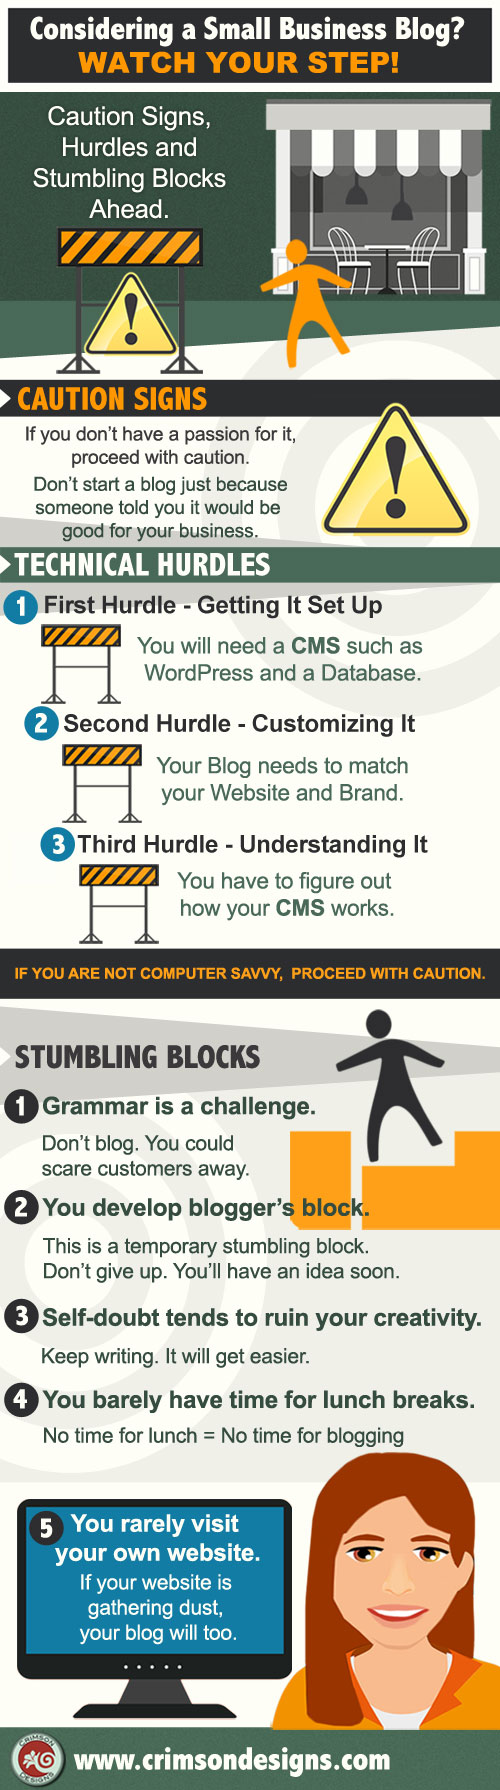 Considering a Small Business Blog - Infographic